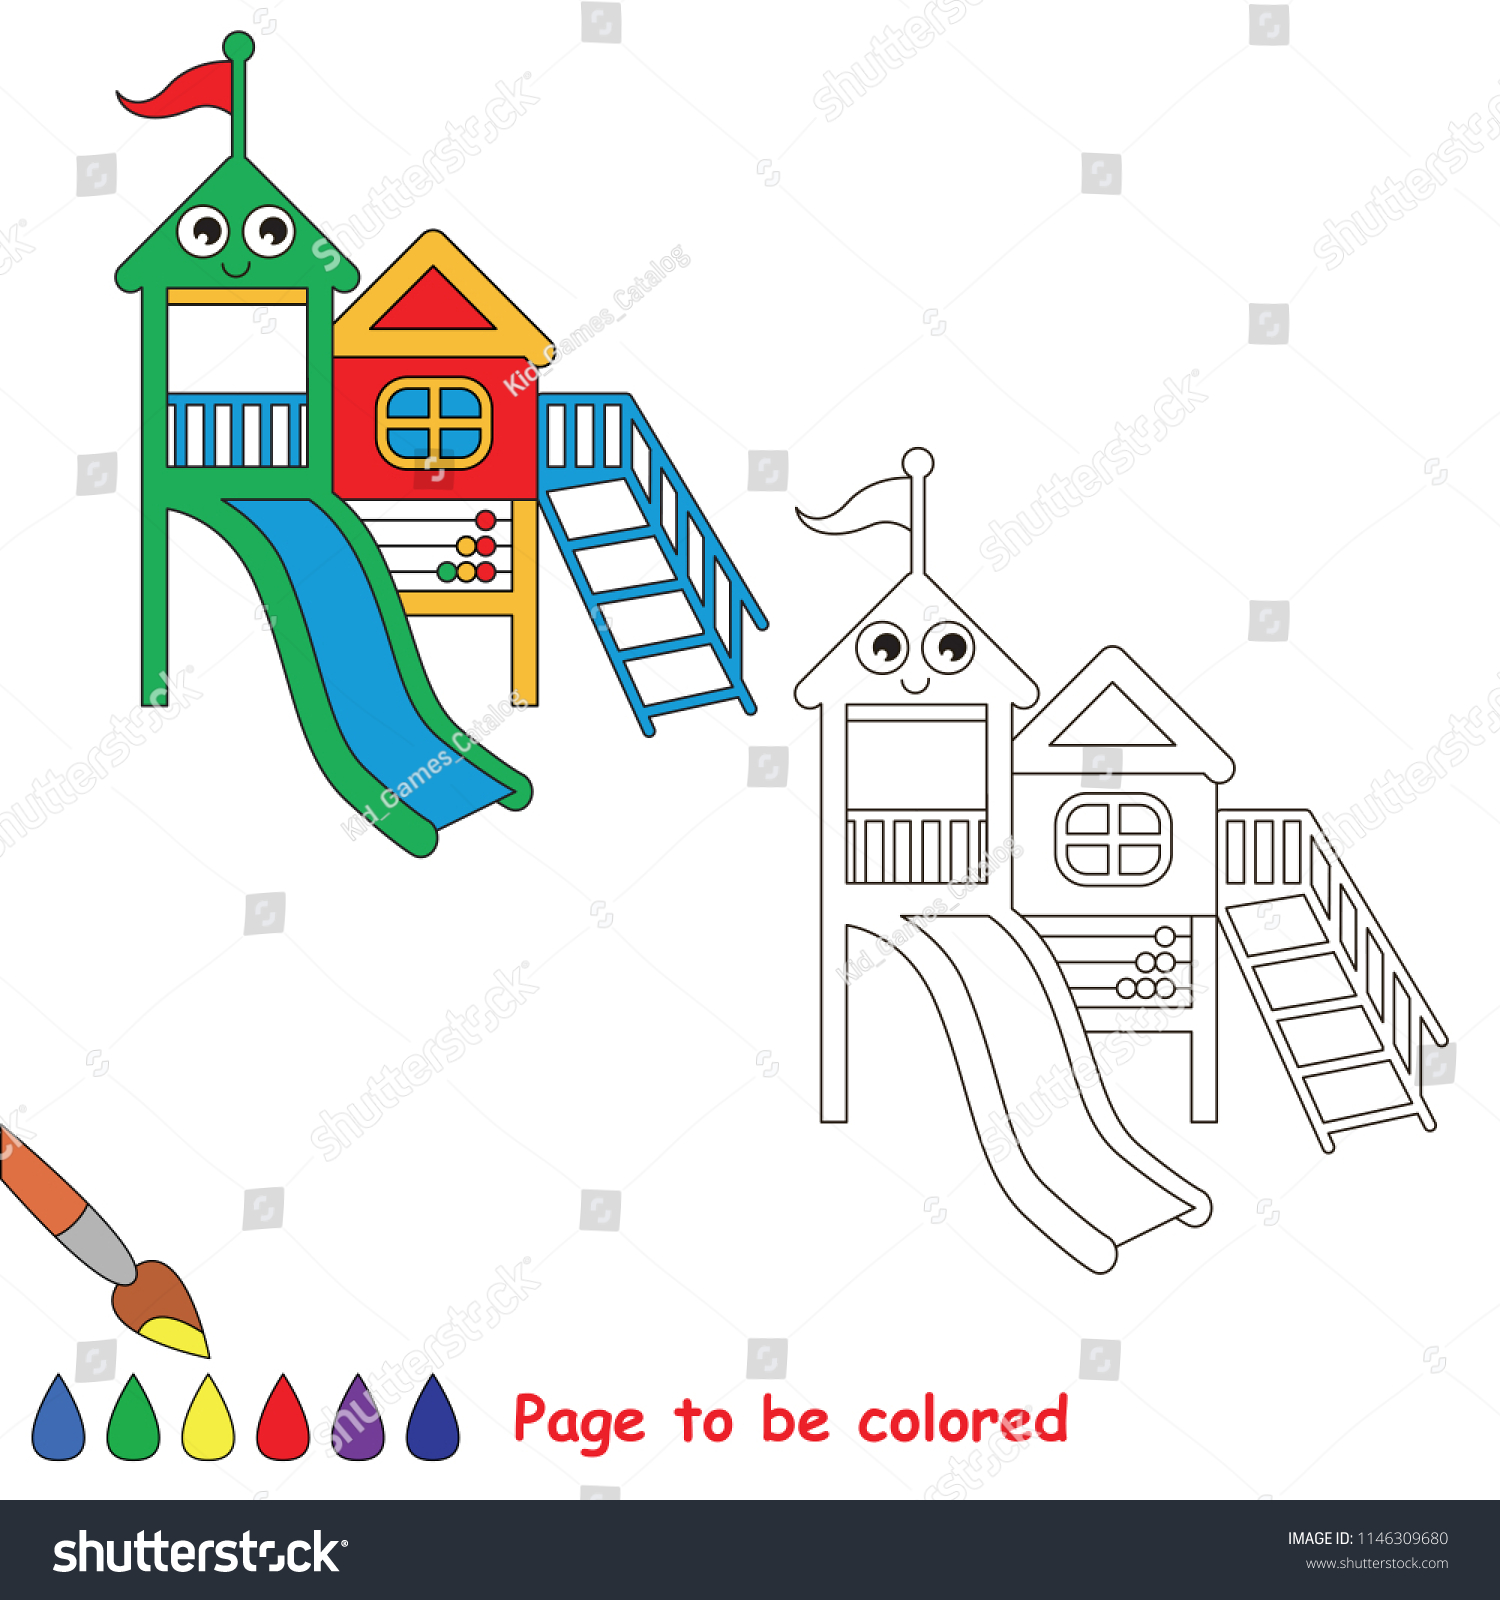 stock vector outdoor playground rainbow smiley to be colored the coloring book for preschool kids with easy